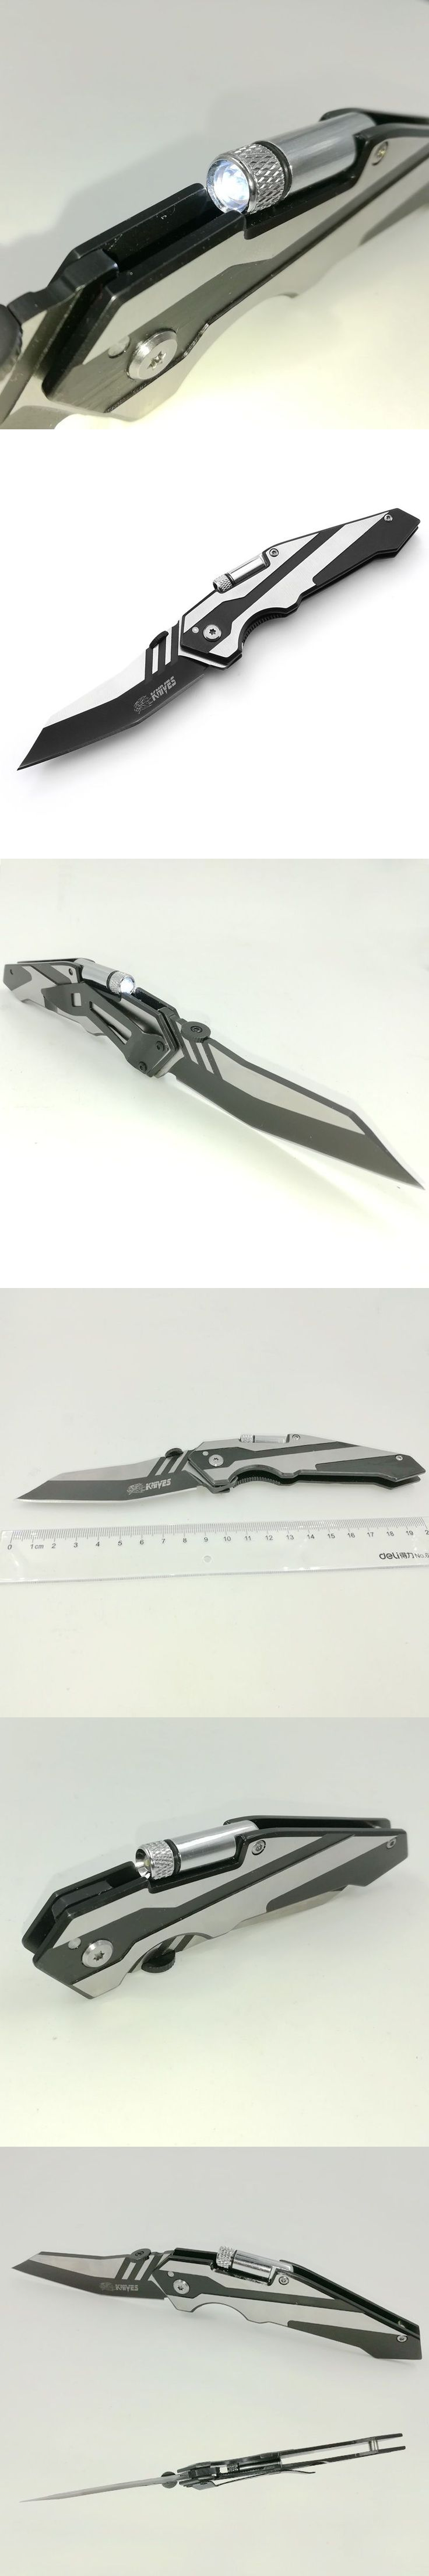 tactical folding brand knife pocket survival knives cold steel camping cuchillos coltelli knifes outdoor small military